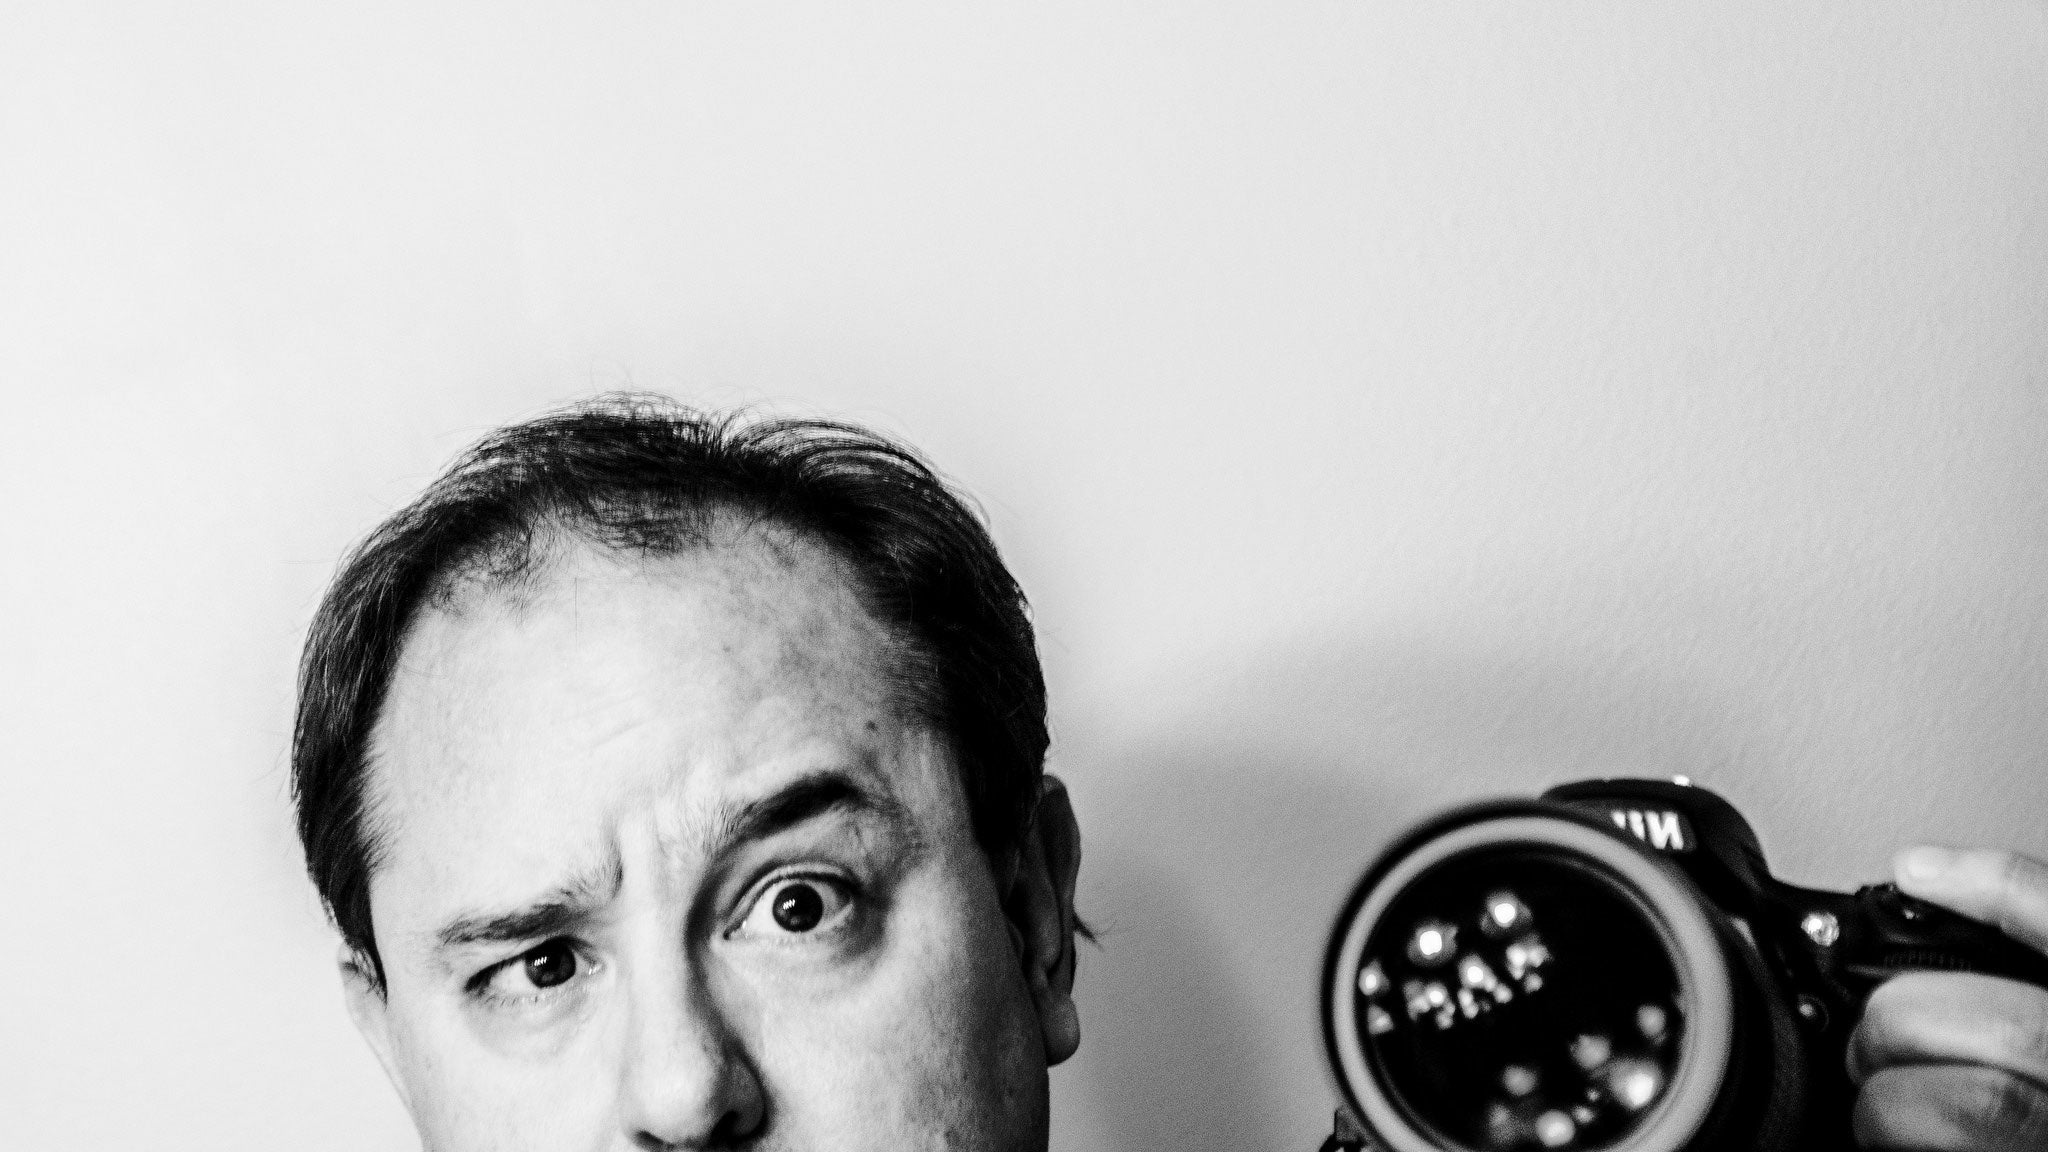 A black and white photograph of John Scalzi taking a photograph of himself, pulling a funny face